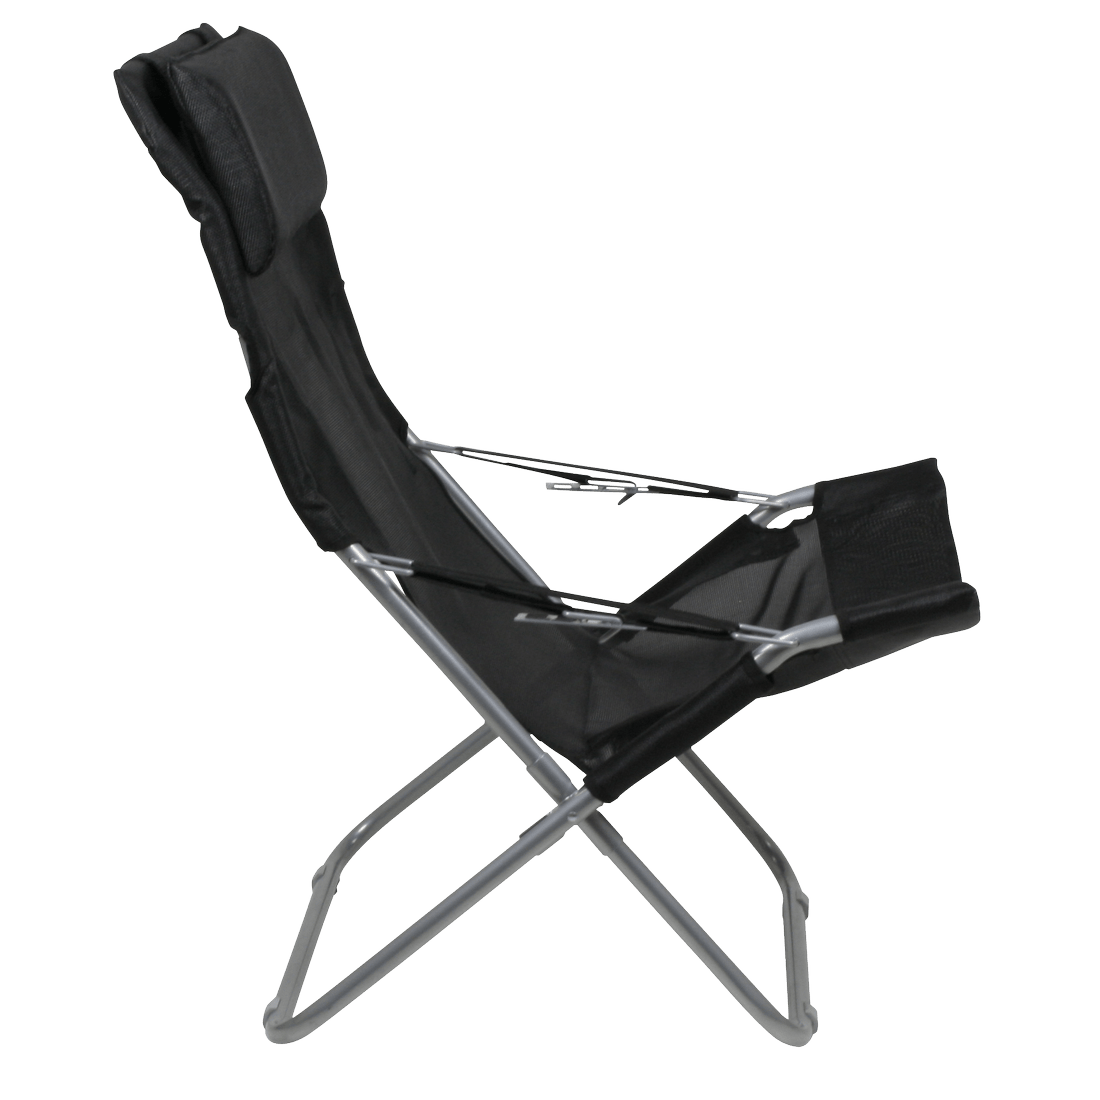 high outdoor folding chairs bistro table and indoor 10t maxi chair camping relax back with head